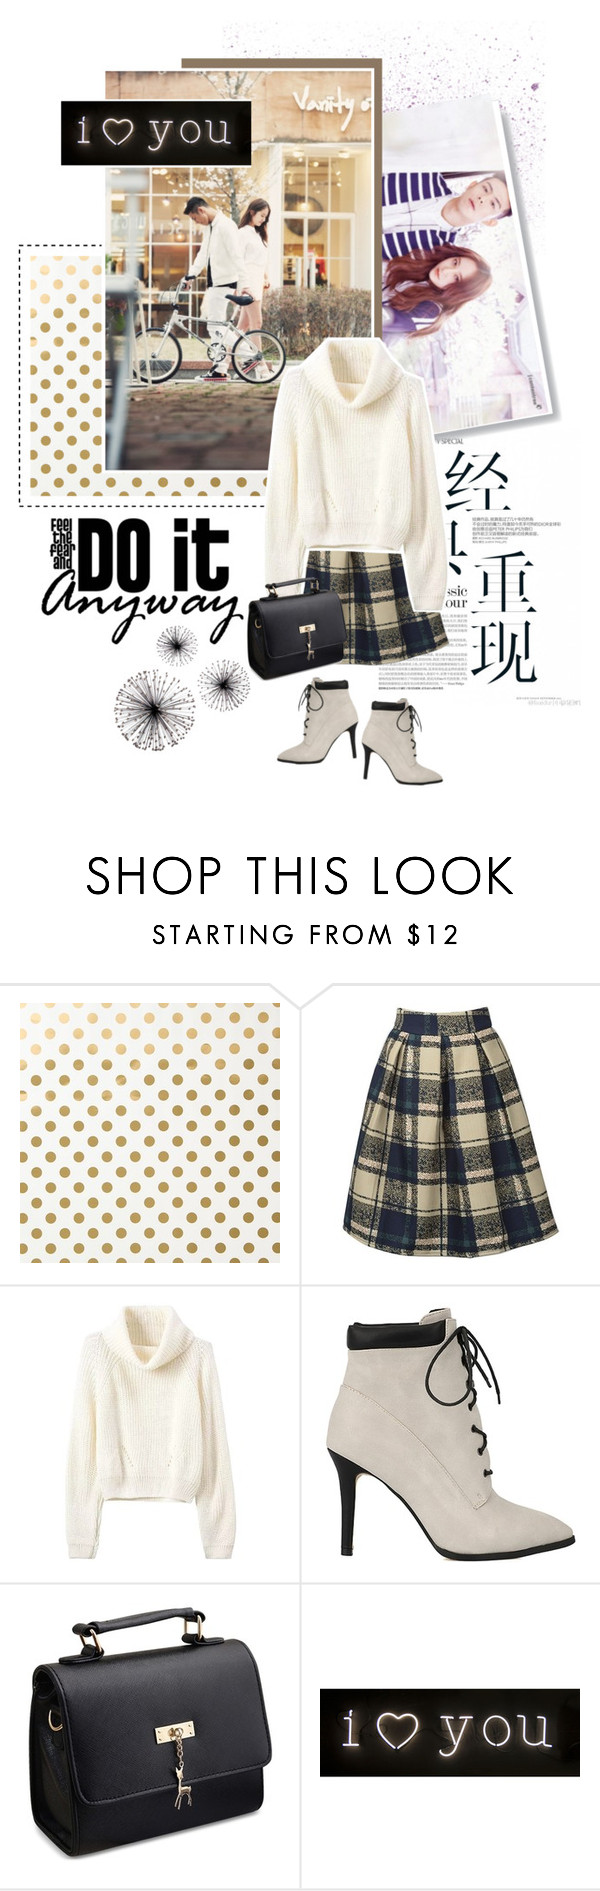 """""""1163. Beenzino + Krystal"""" by oh-pororo ❤ liked on Polyvore featuring Kate Spade, Seletti, Krystal, etude, beenzino and adcampaign"""